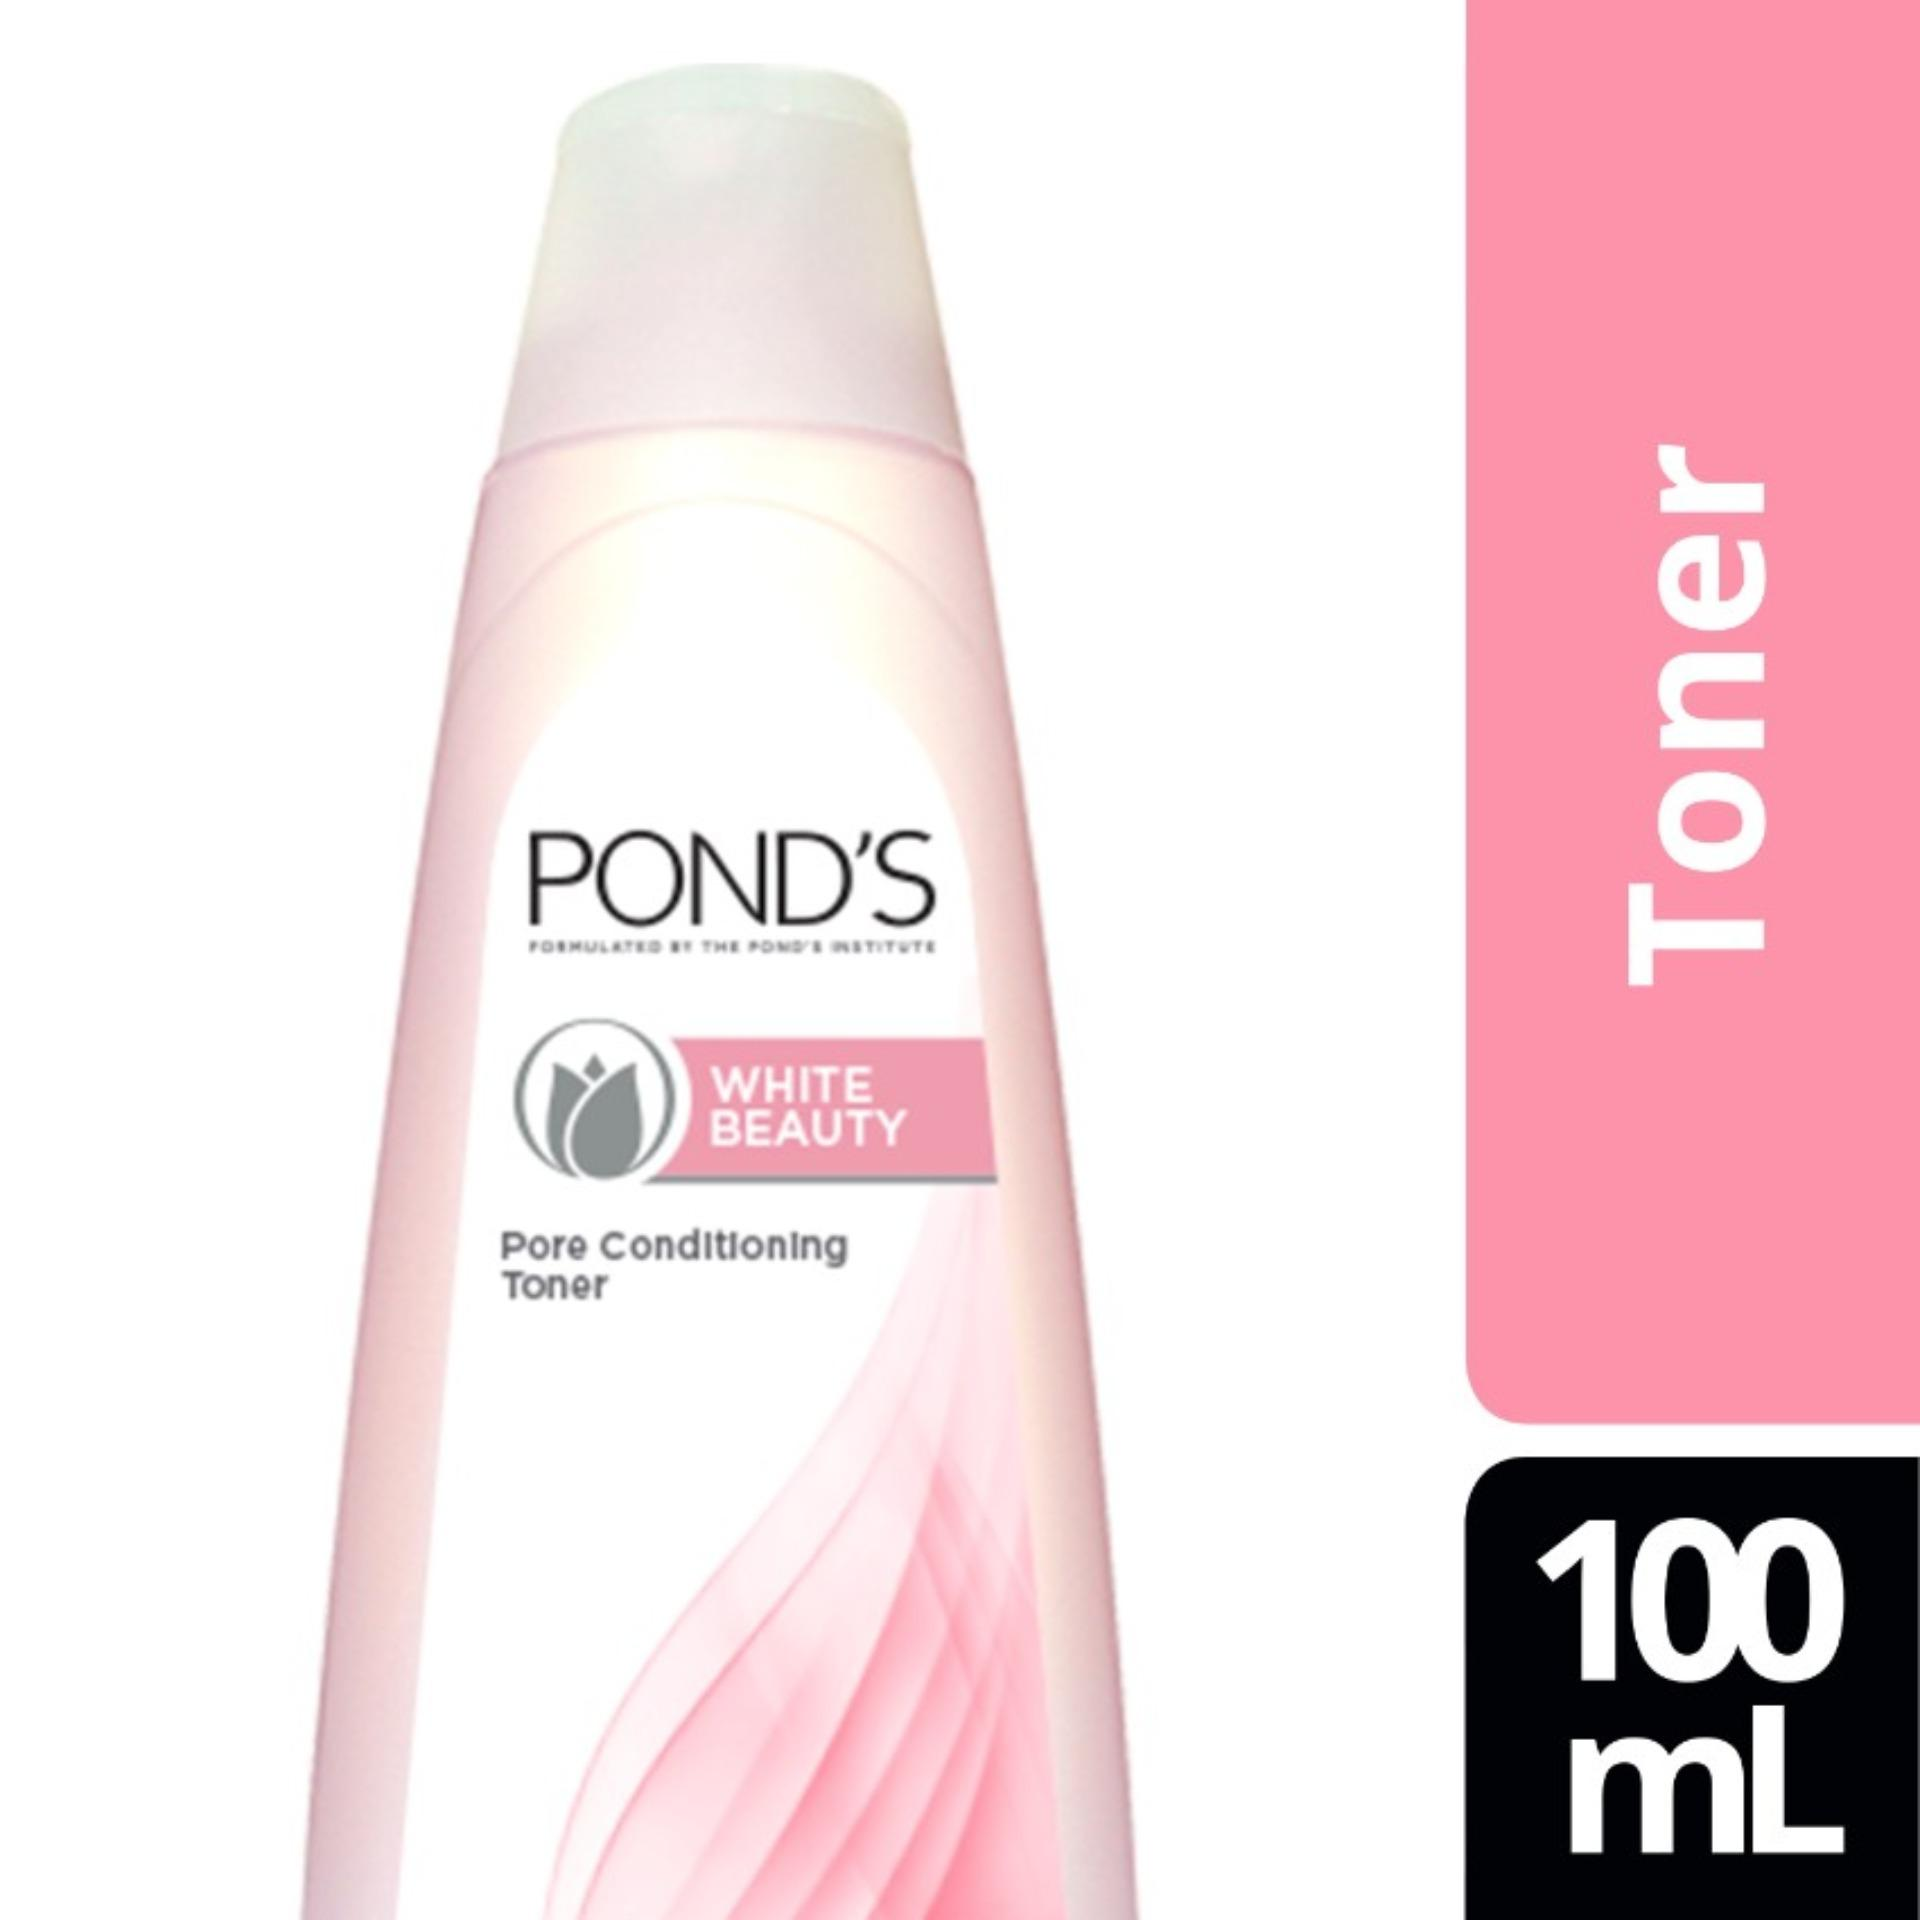 Face Cleaner Brands Facial On Sale Prices Set Reviews Perfect White Clay 120 Gr Foaming Net Ponds Beauty Toner 100ml